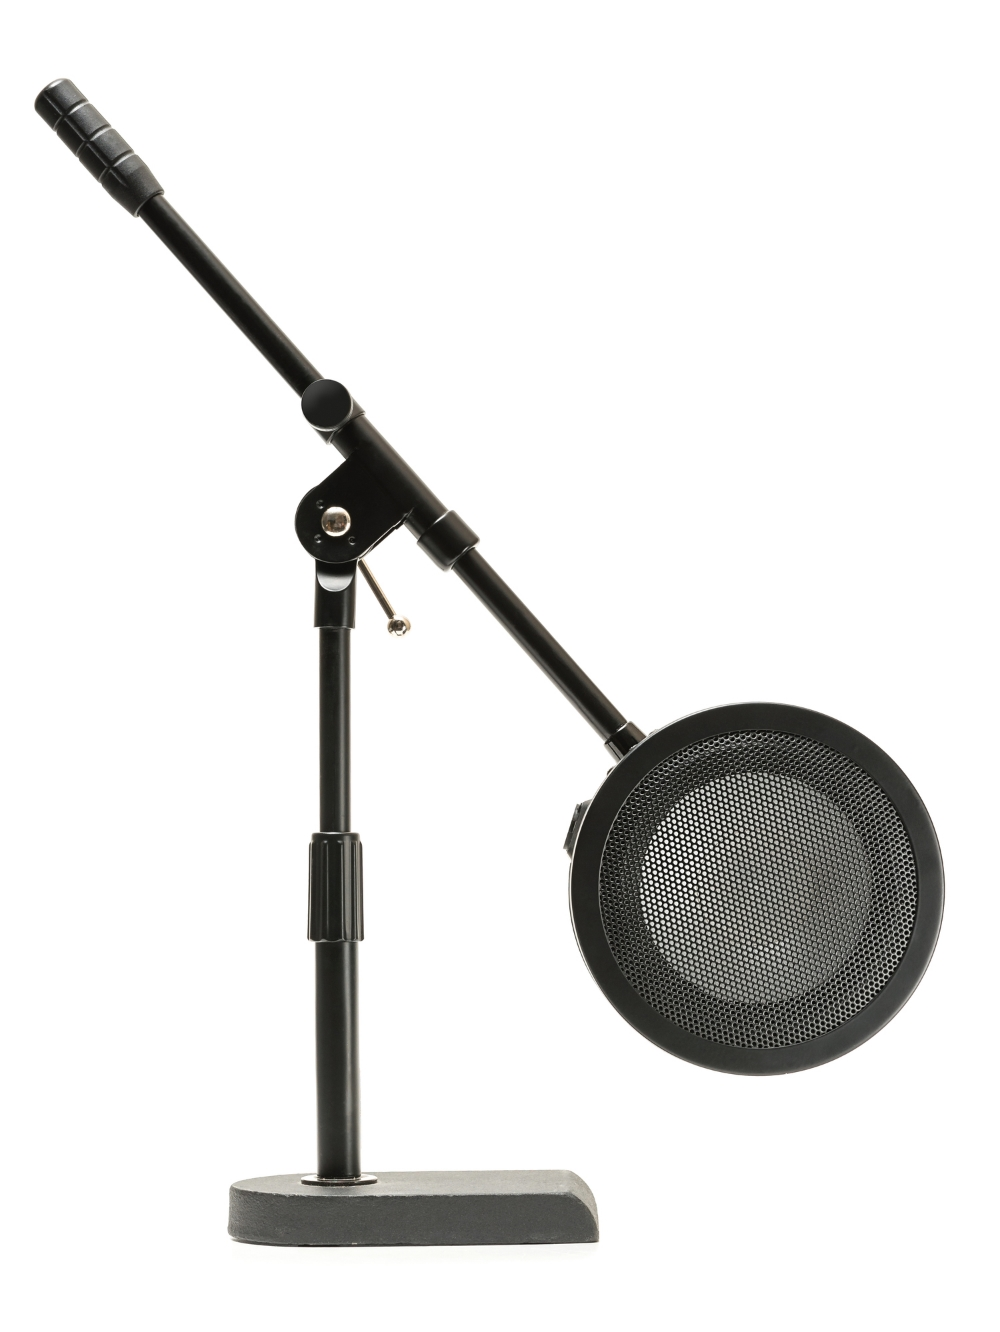 With lower overall weight, and a smaller form factor, the Solomon LoFReQ can be used with almost any mic stand, including most desktop stands.